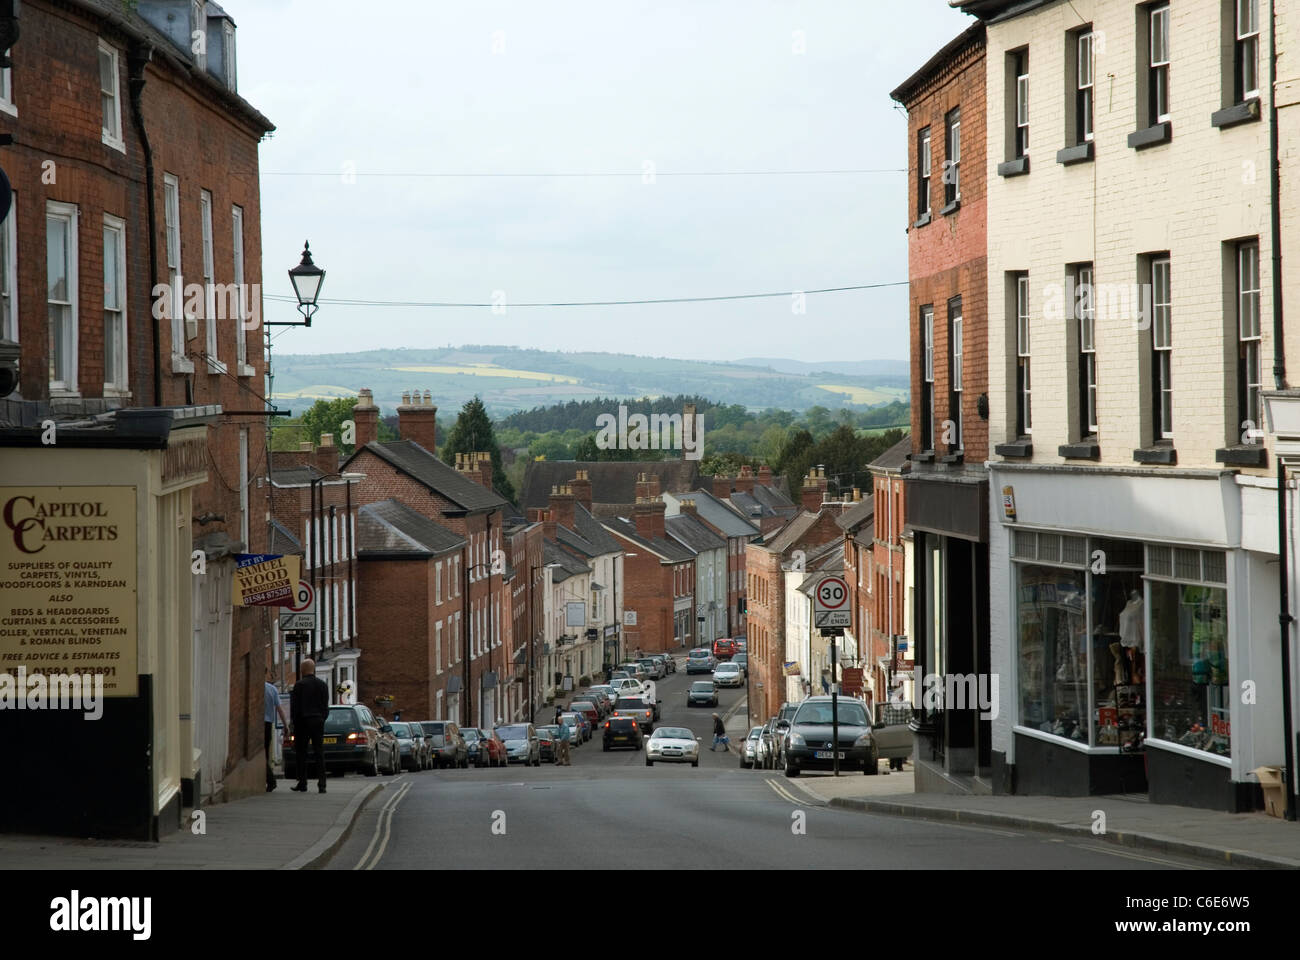 The Feathers Hotel, Ludlow, Shropshire, GB. - Stock Image